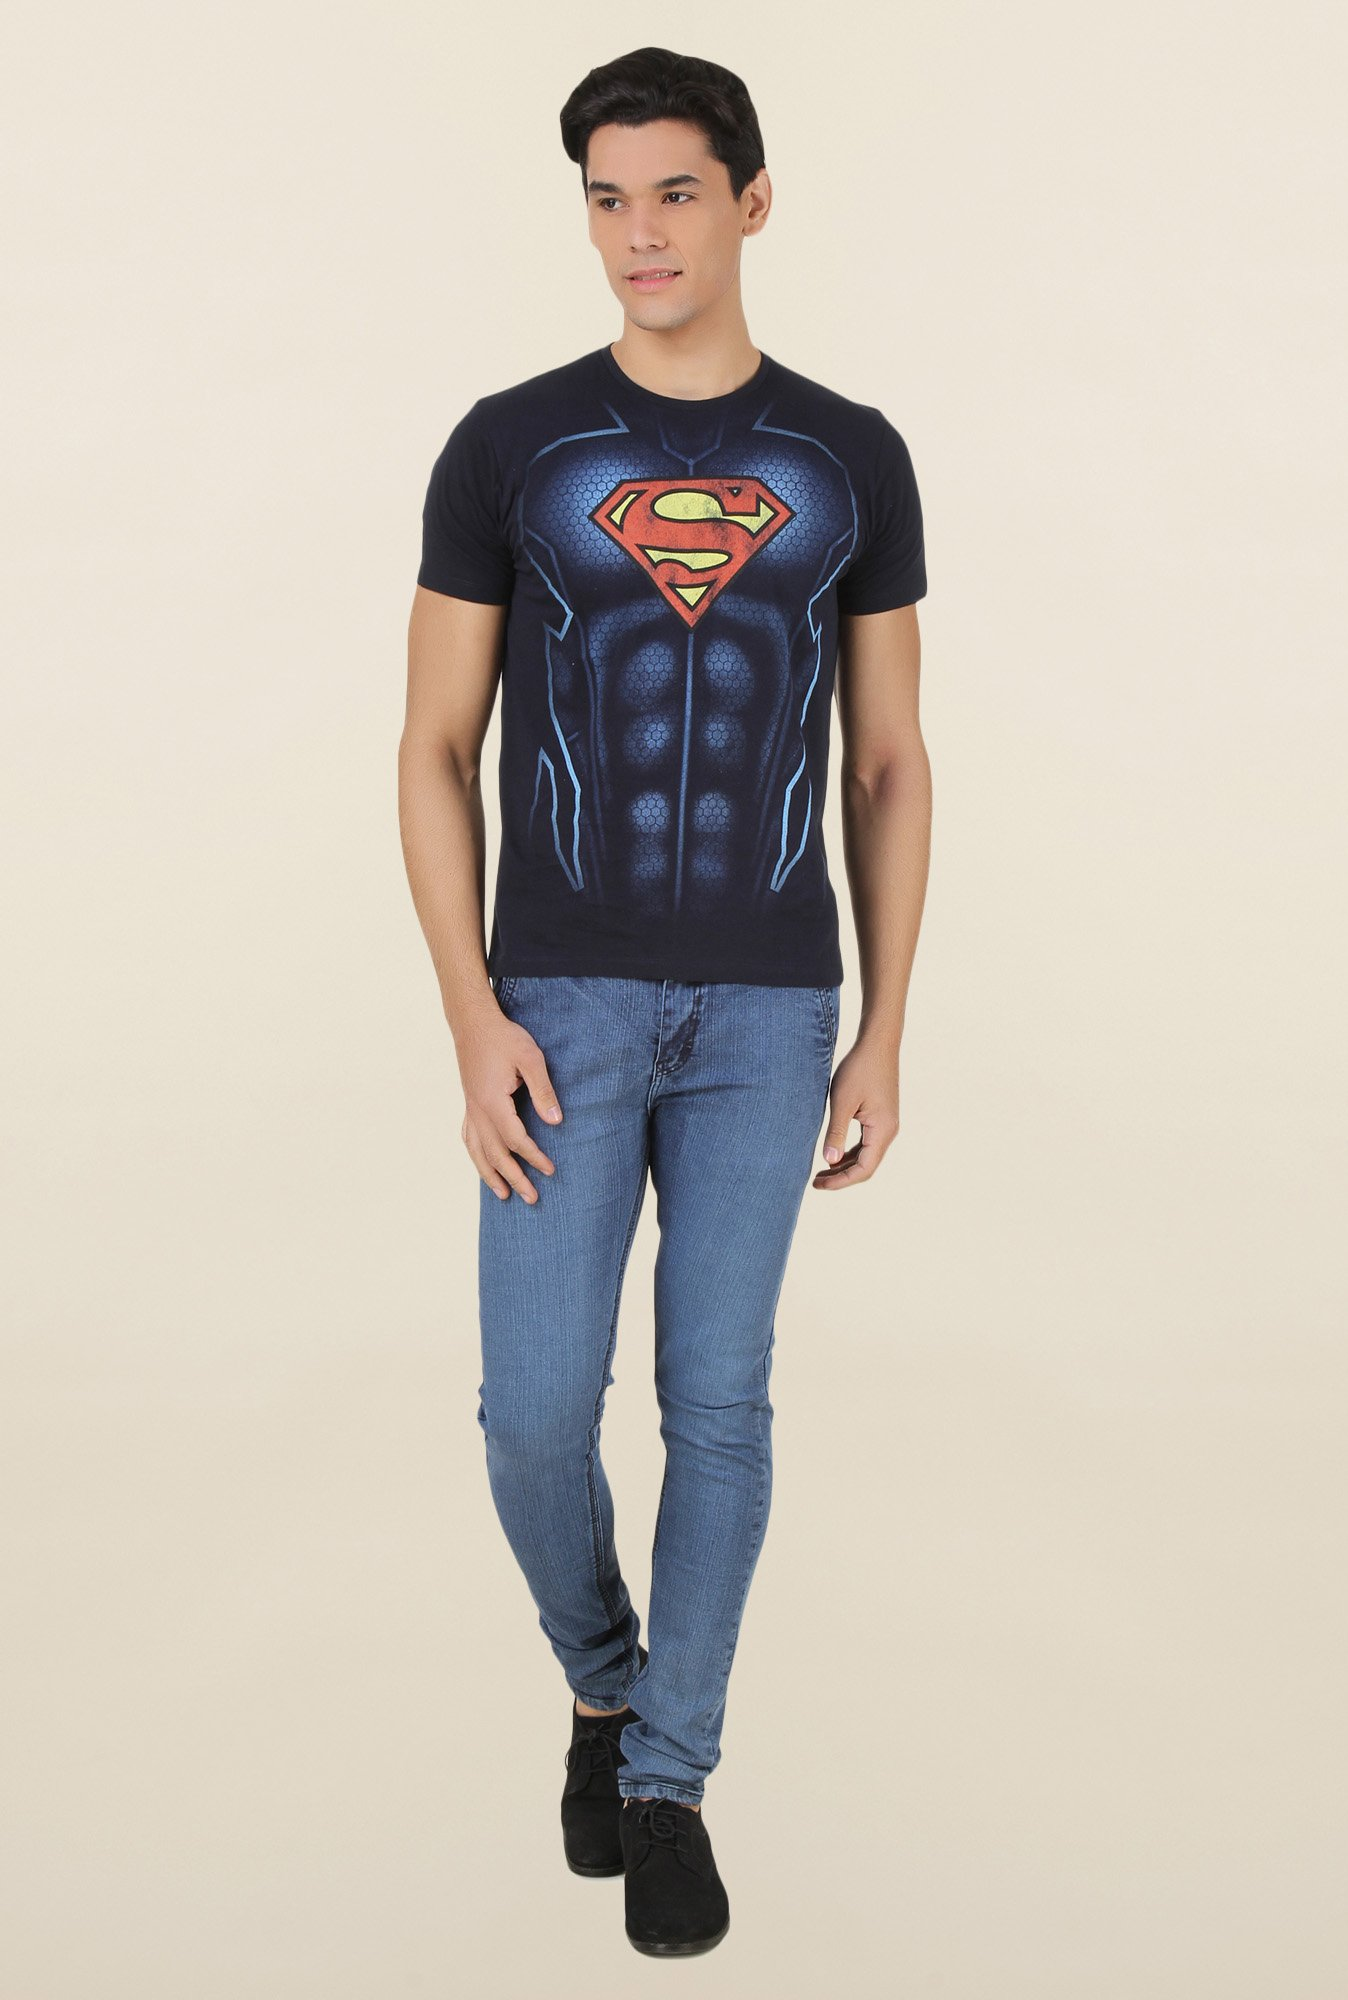 Superman Dark Navy Cotton T Shirt